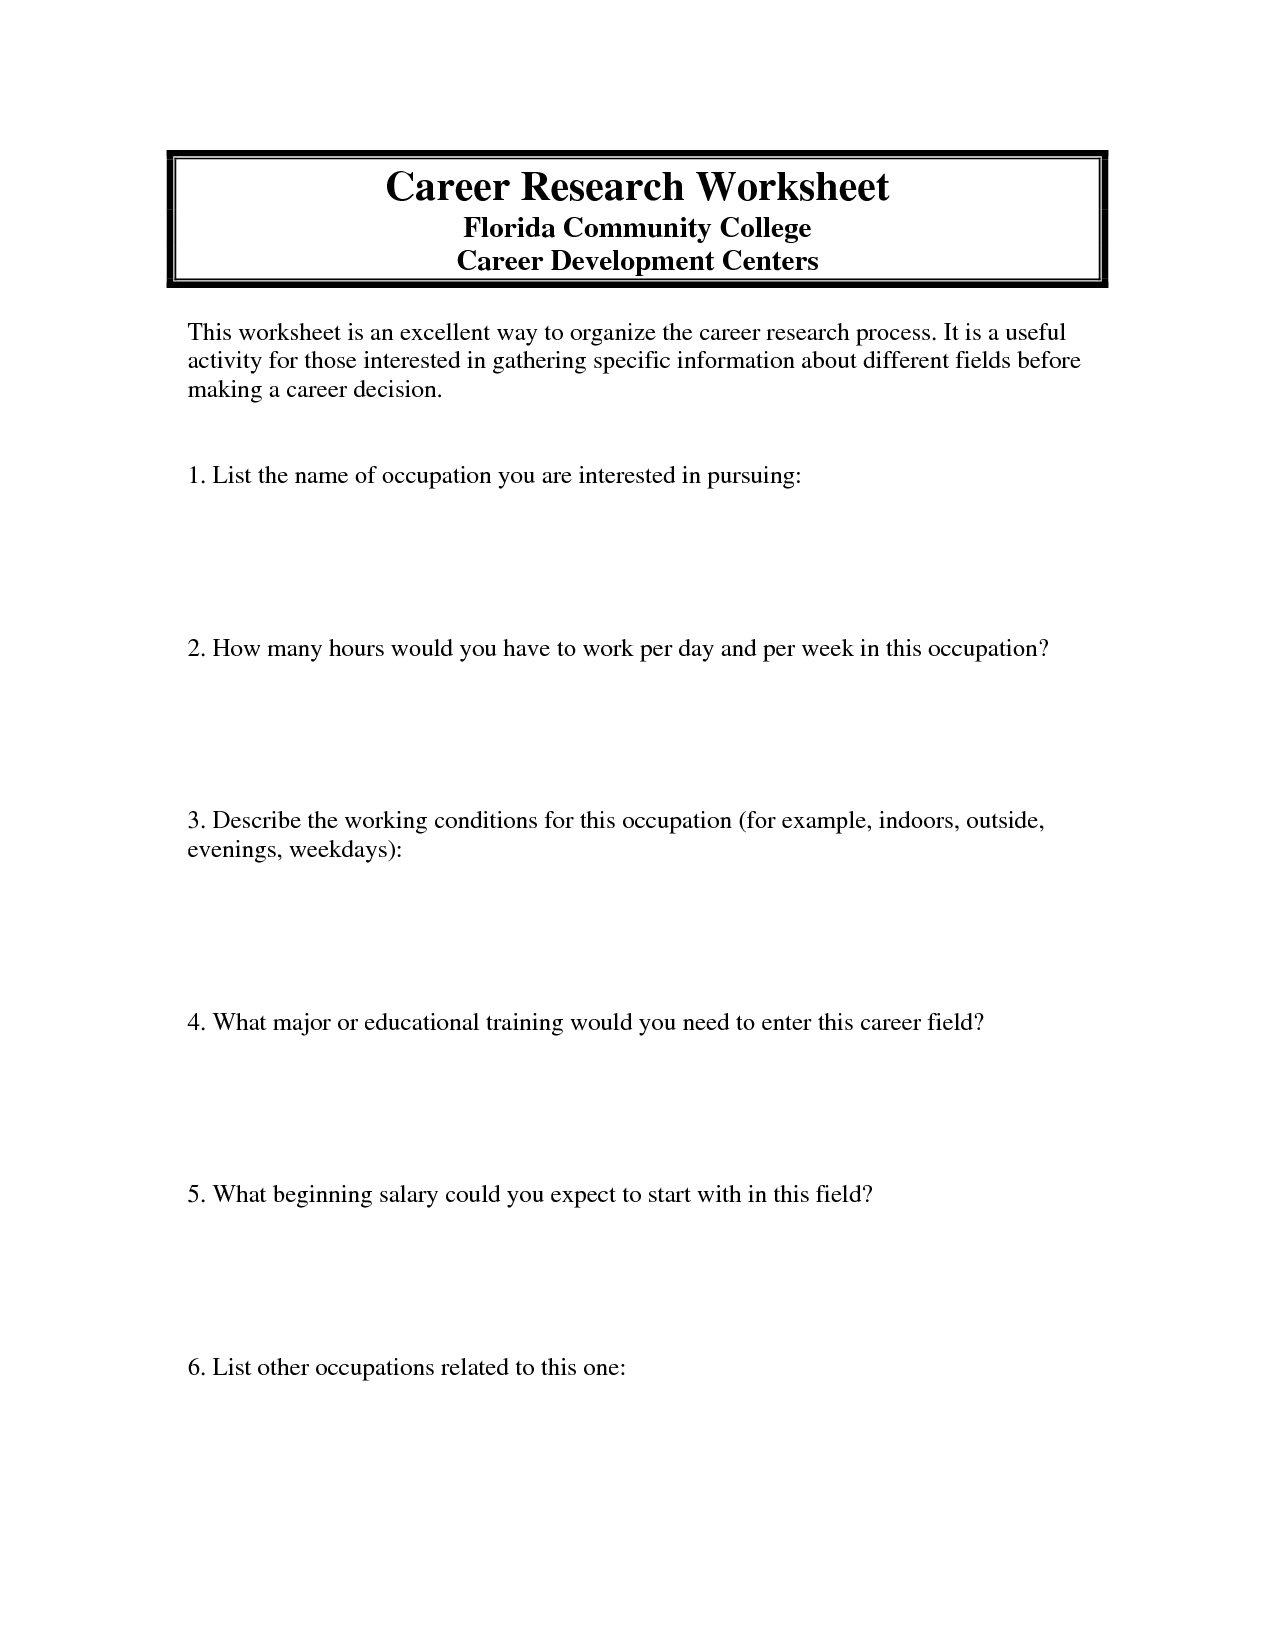 Career Plan Worksheet Career Research Worksheet Career Research